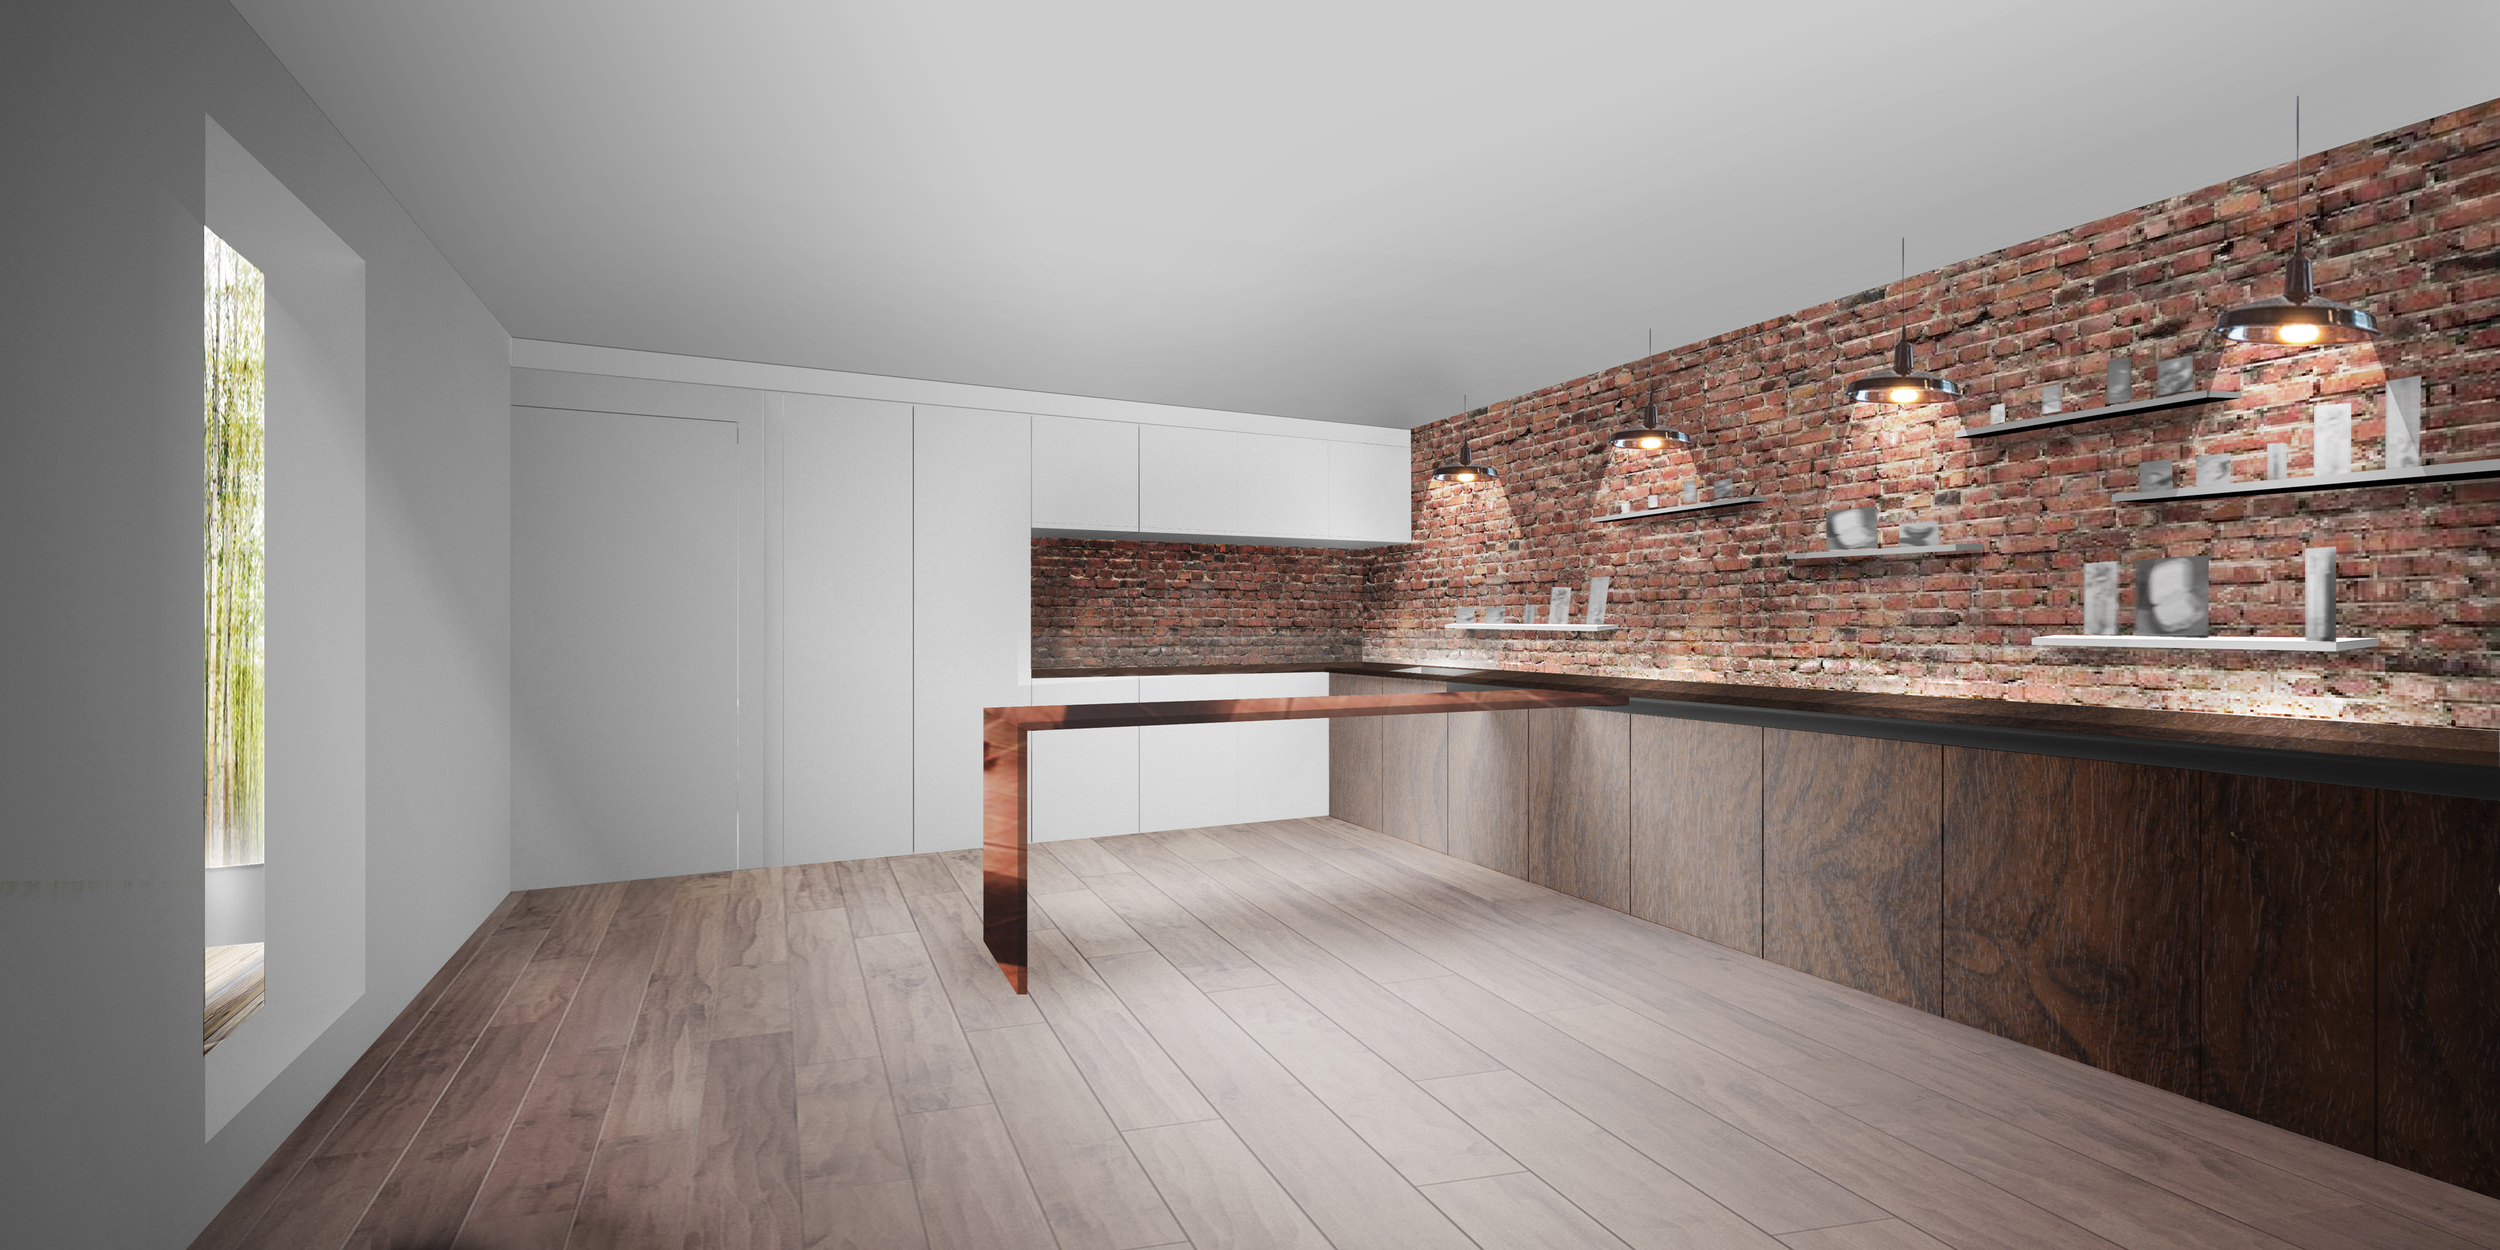 atelier chang_024 city road_002_kitchen.jpg